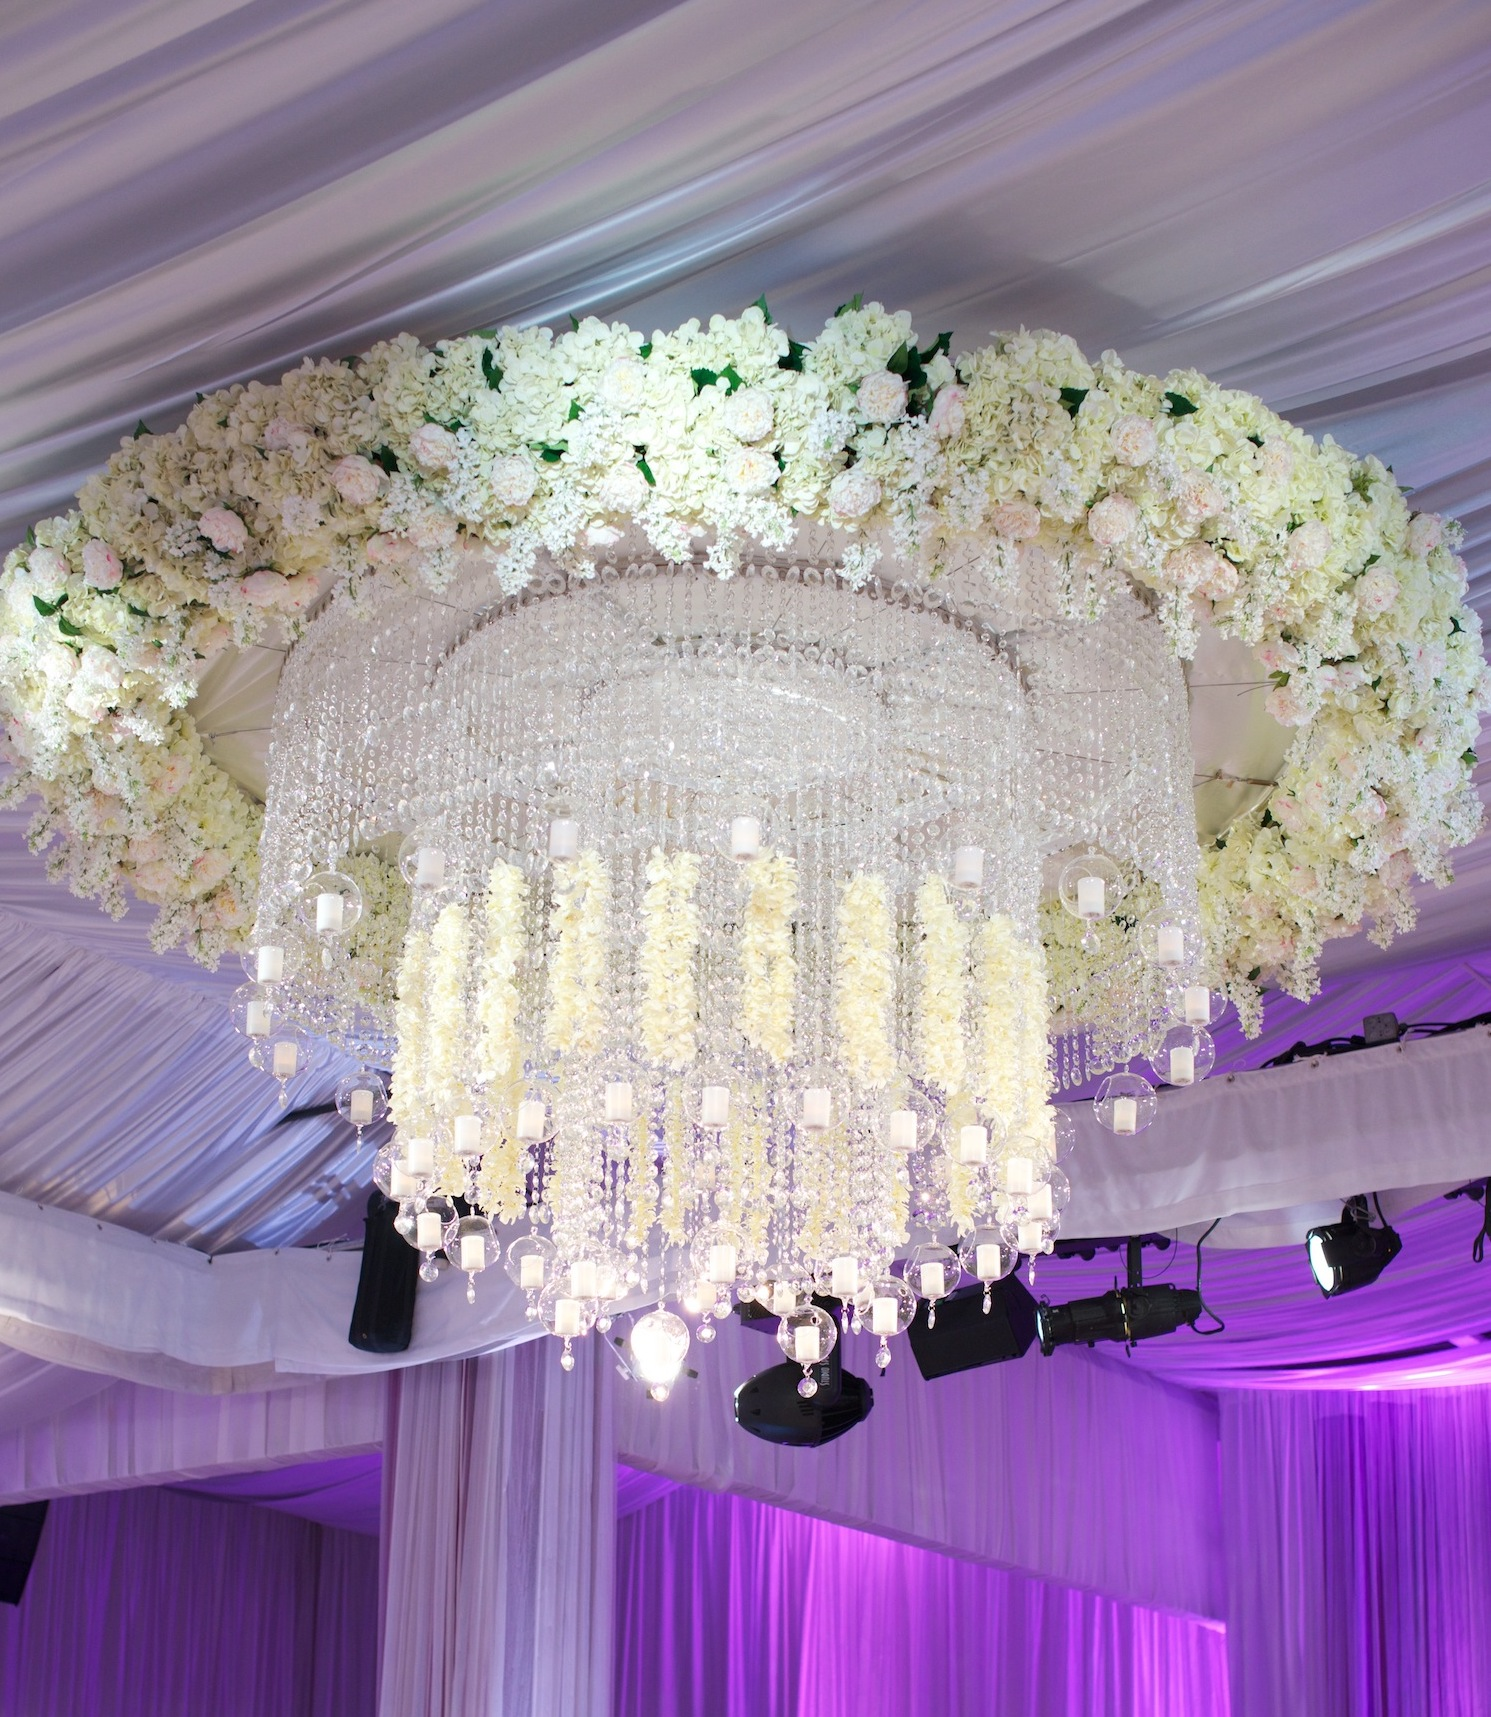 Kandi Burruss Real Housewives wedding ceremony and reception flower chandelier candles